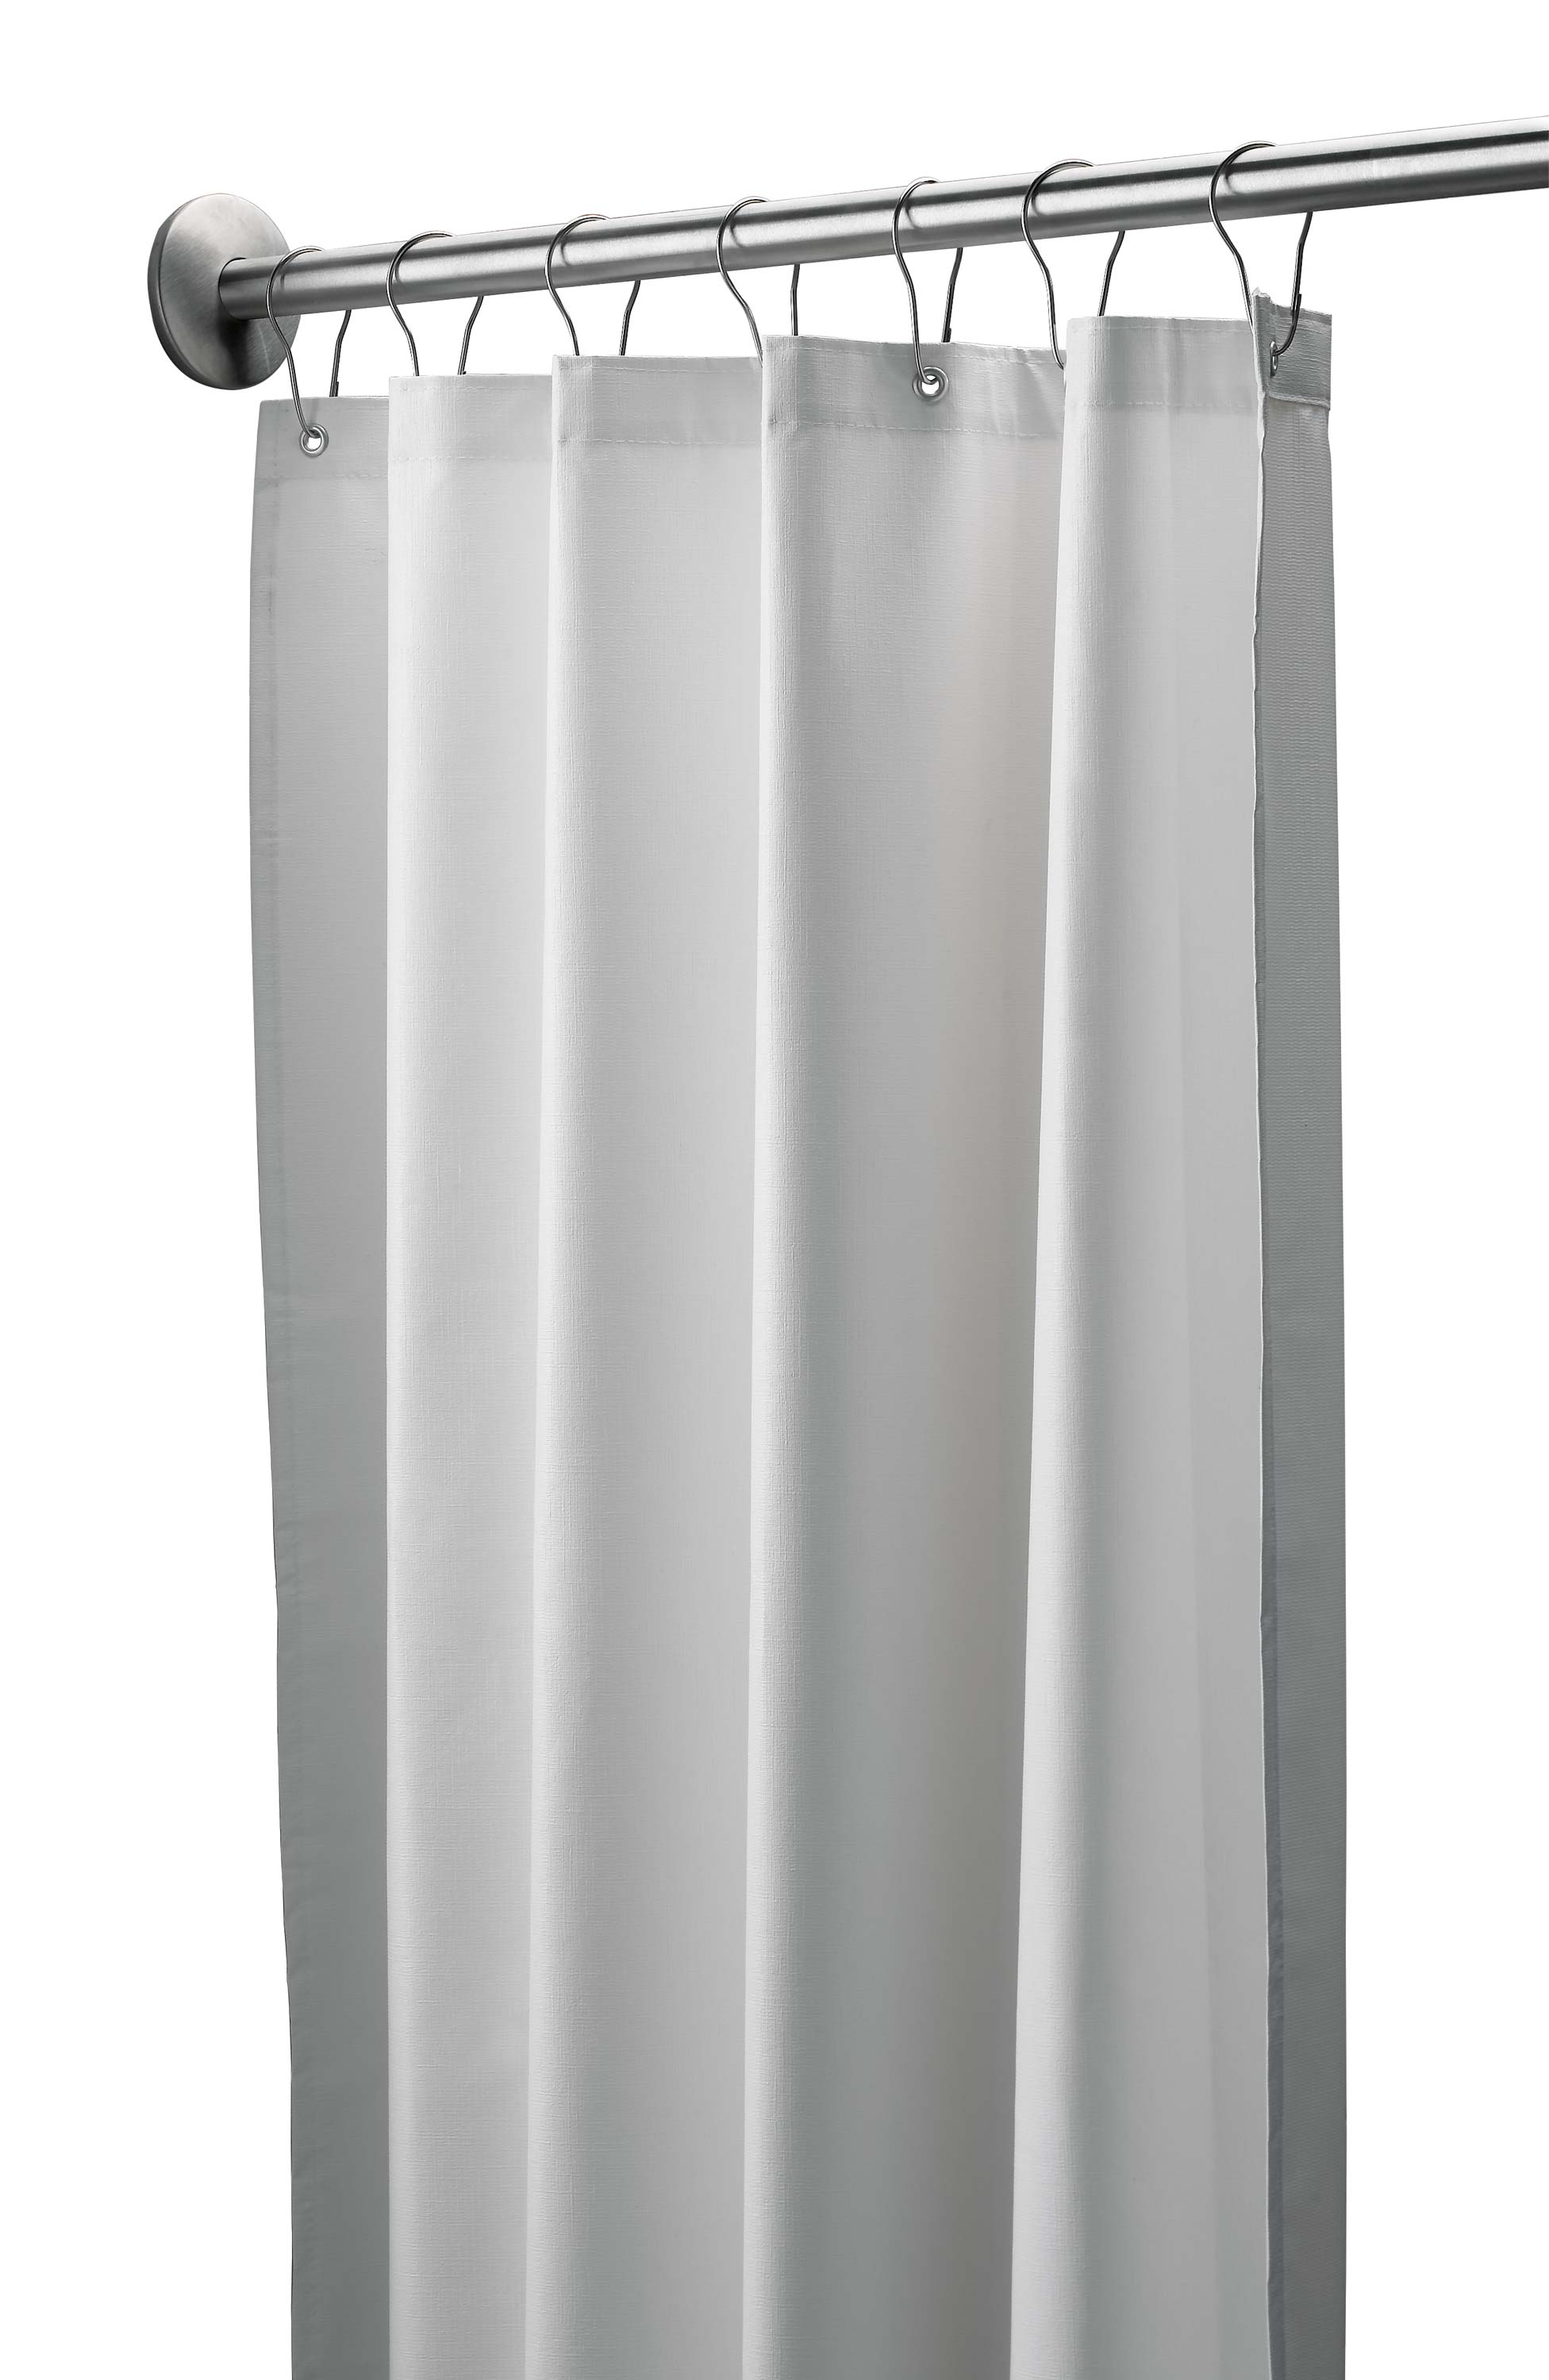 Antimicrobial Vinyl Shower Curtain - Bradley Corporation